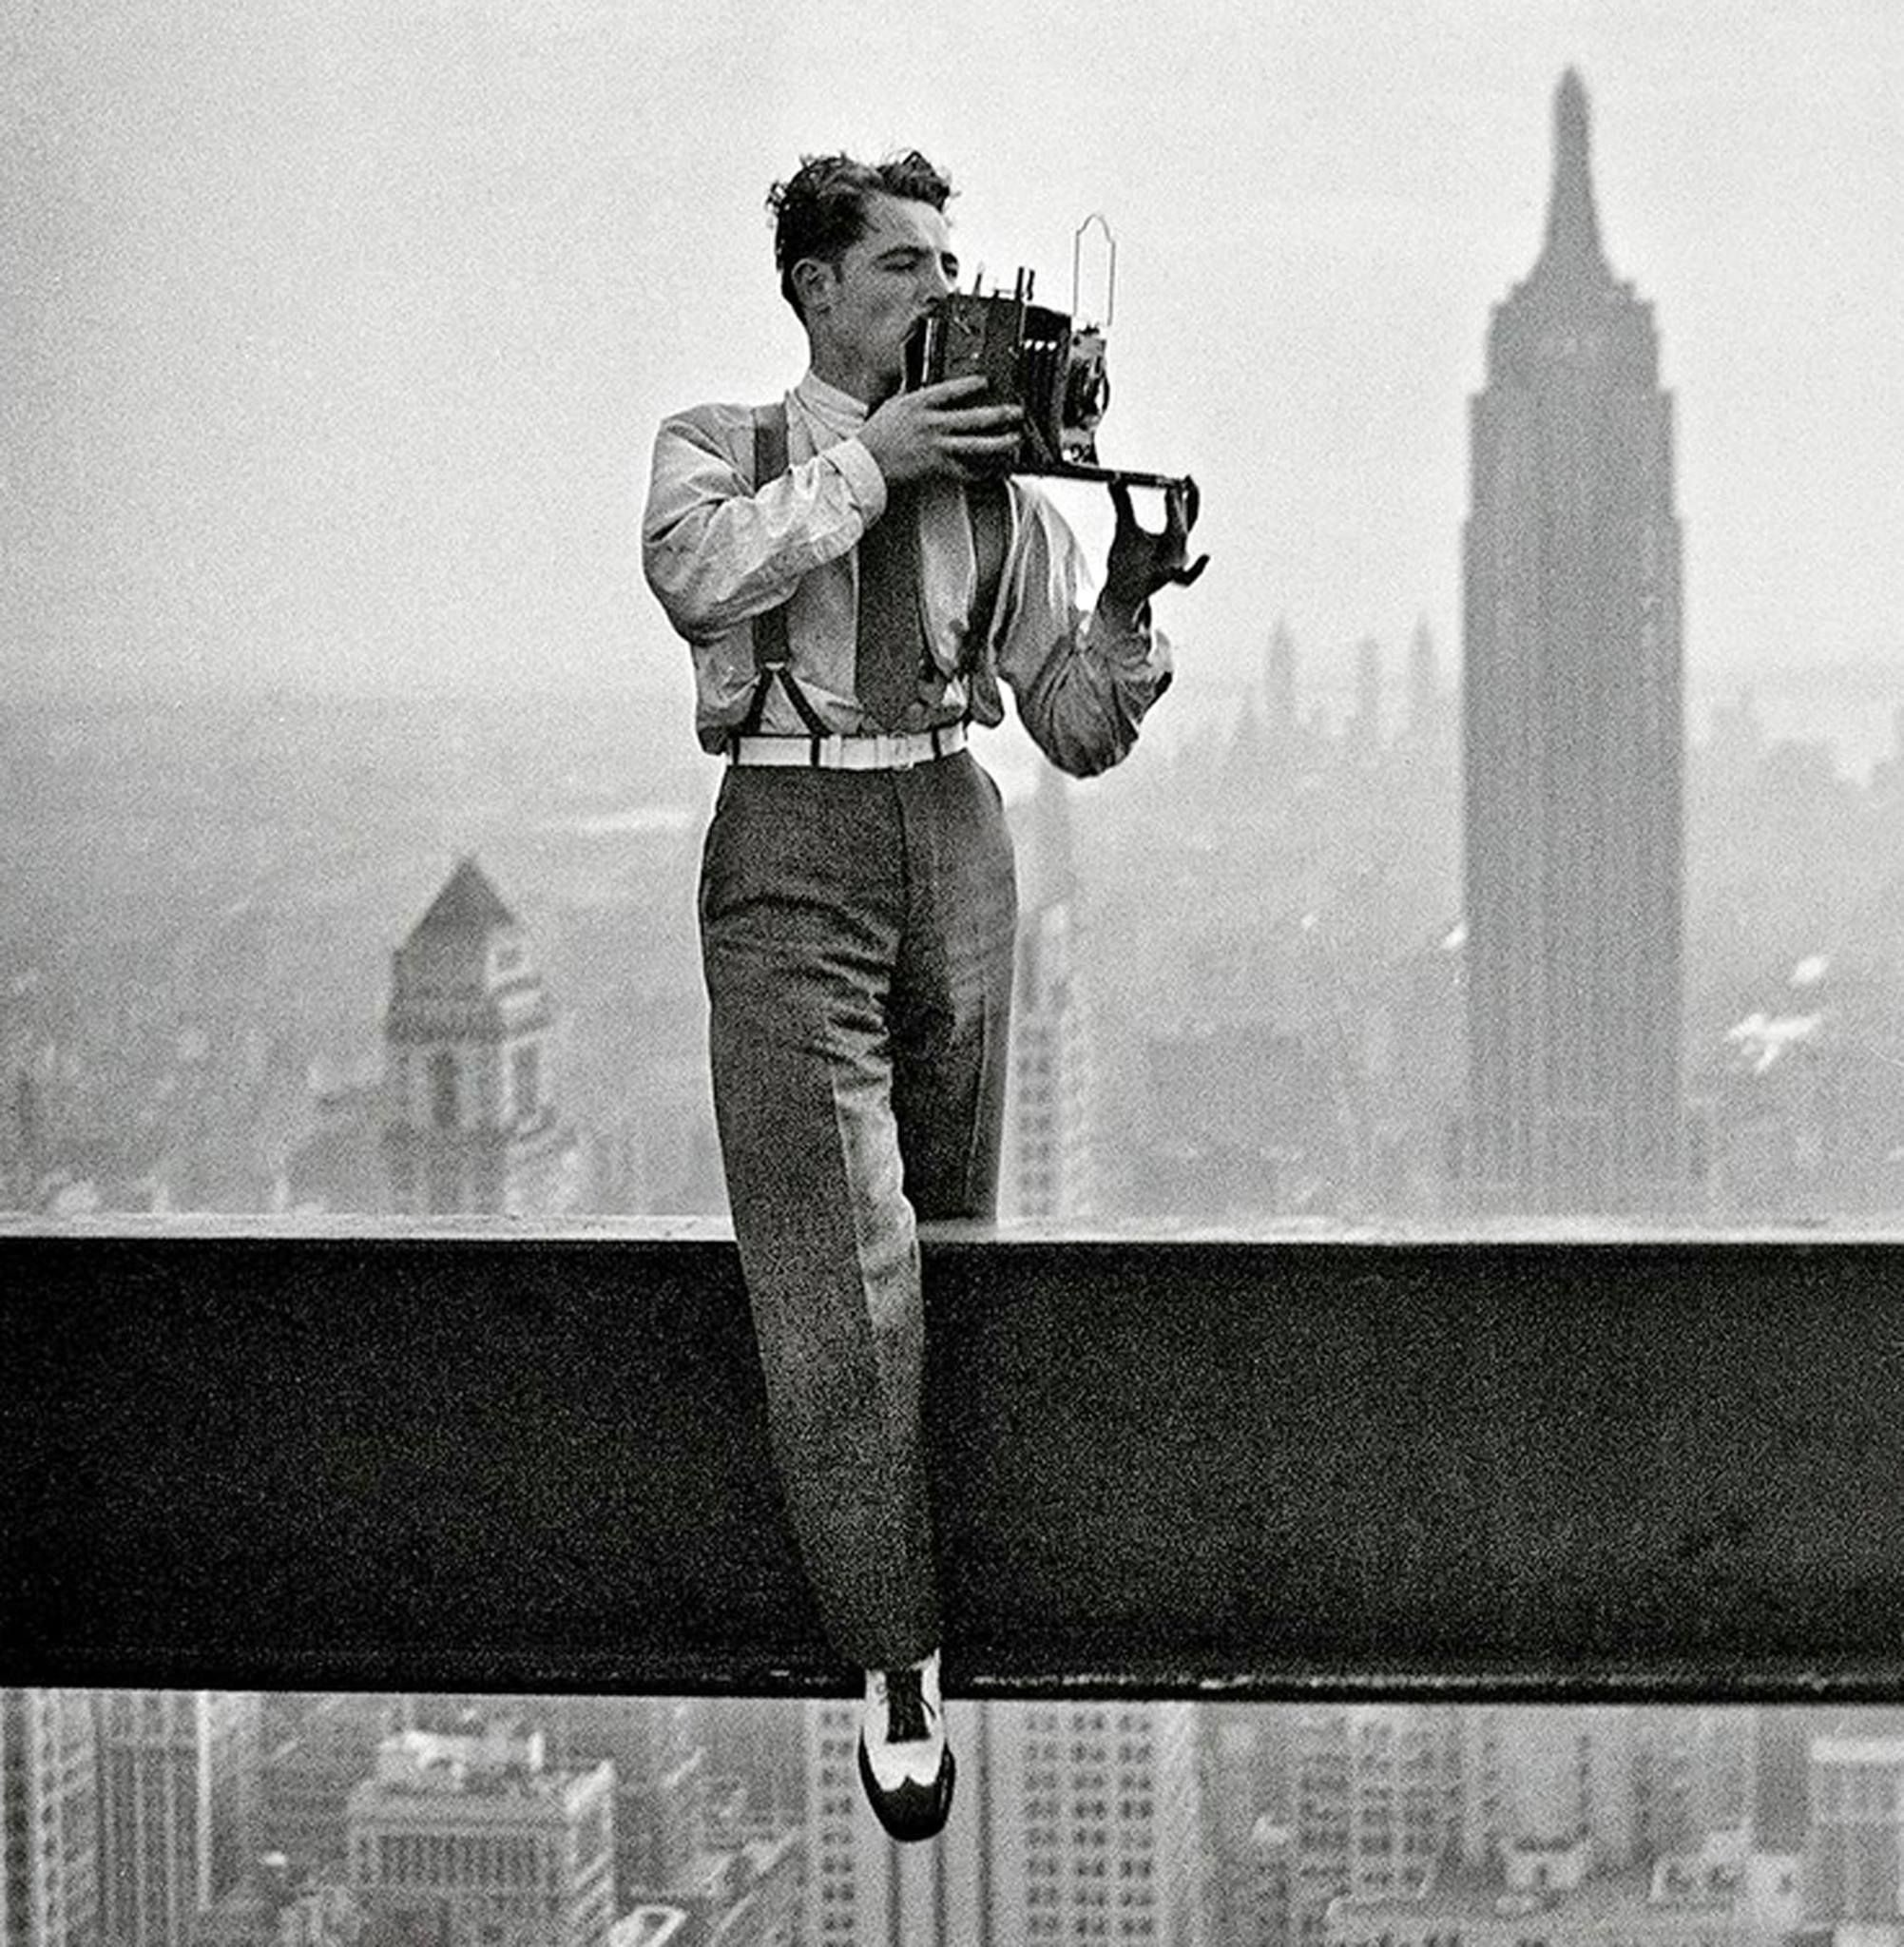 The Fascinating Story Of Dapper Daredevil Who Took One Most Iconic Pictures 20th Century Thomas Kelley